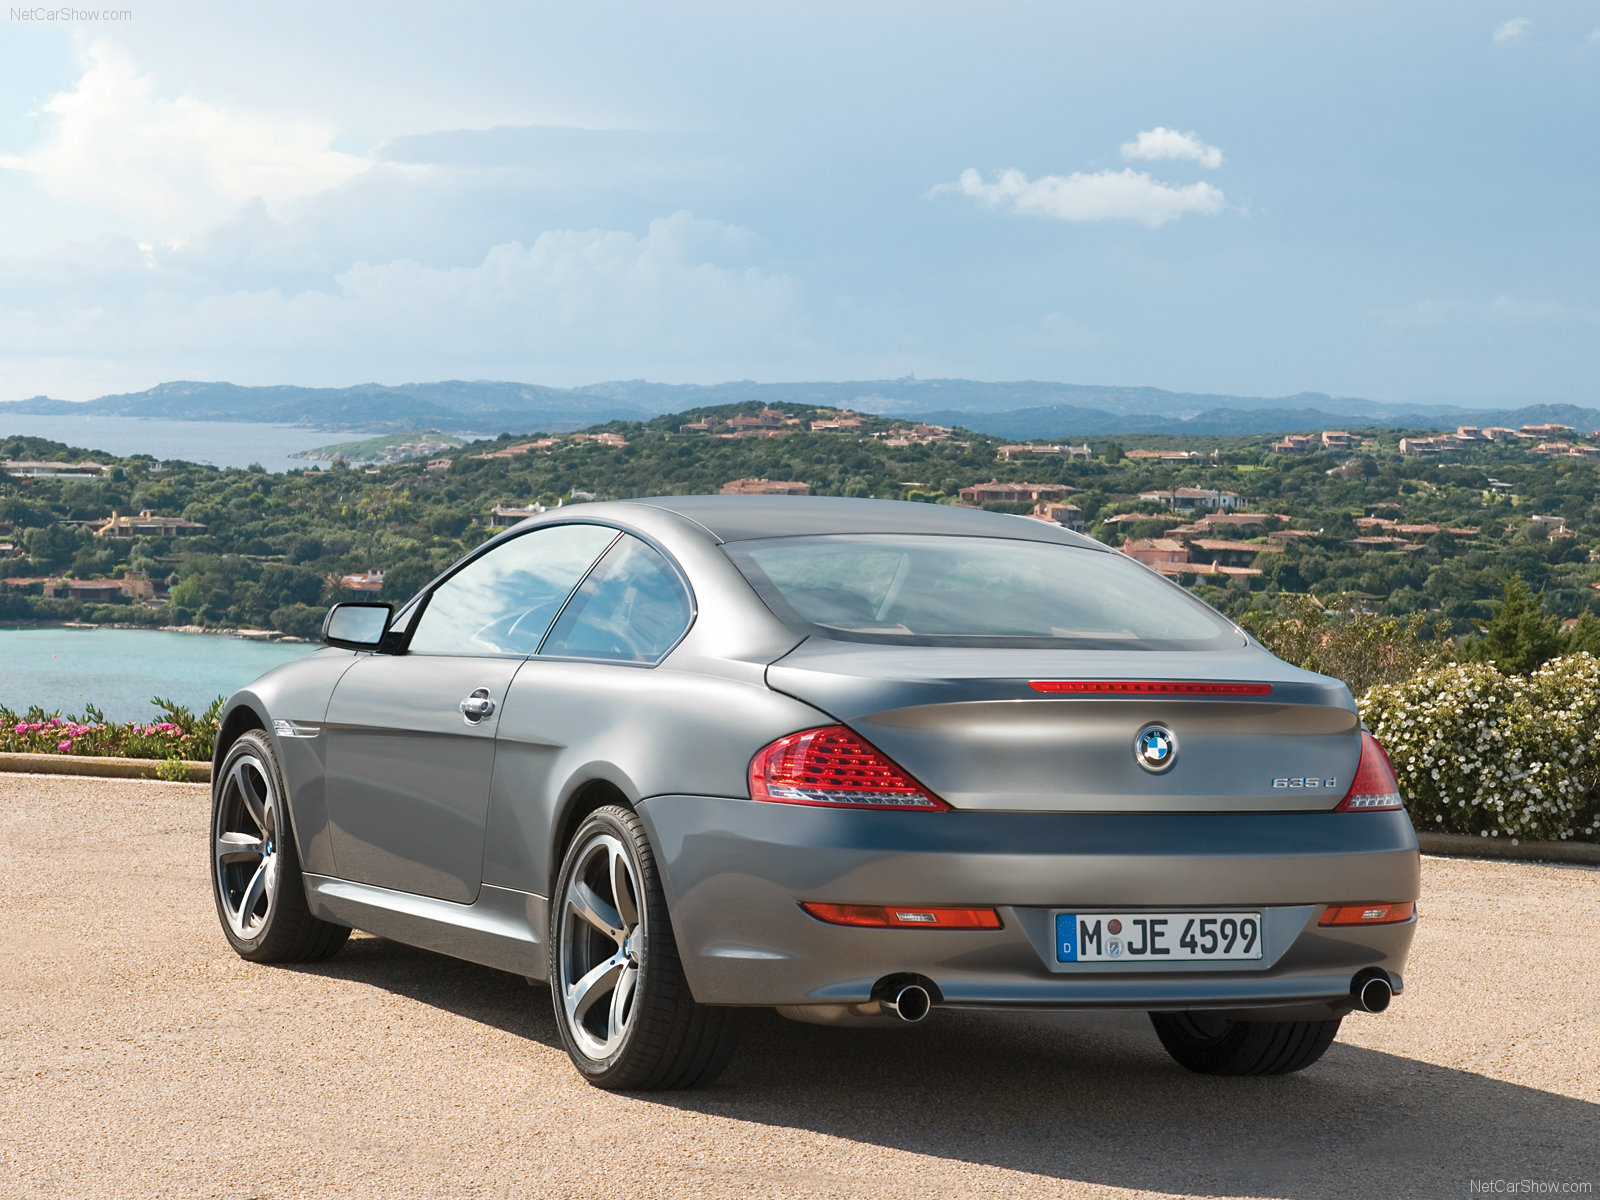 bmw 6 series e63 photos photogallery with 52 pics. Black Bedroom Furniture Sets. Home Design Ideas